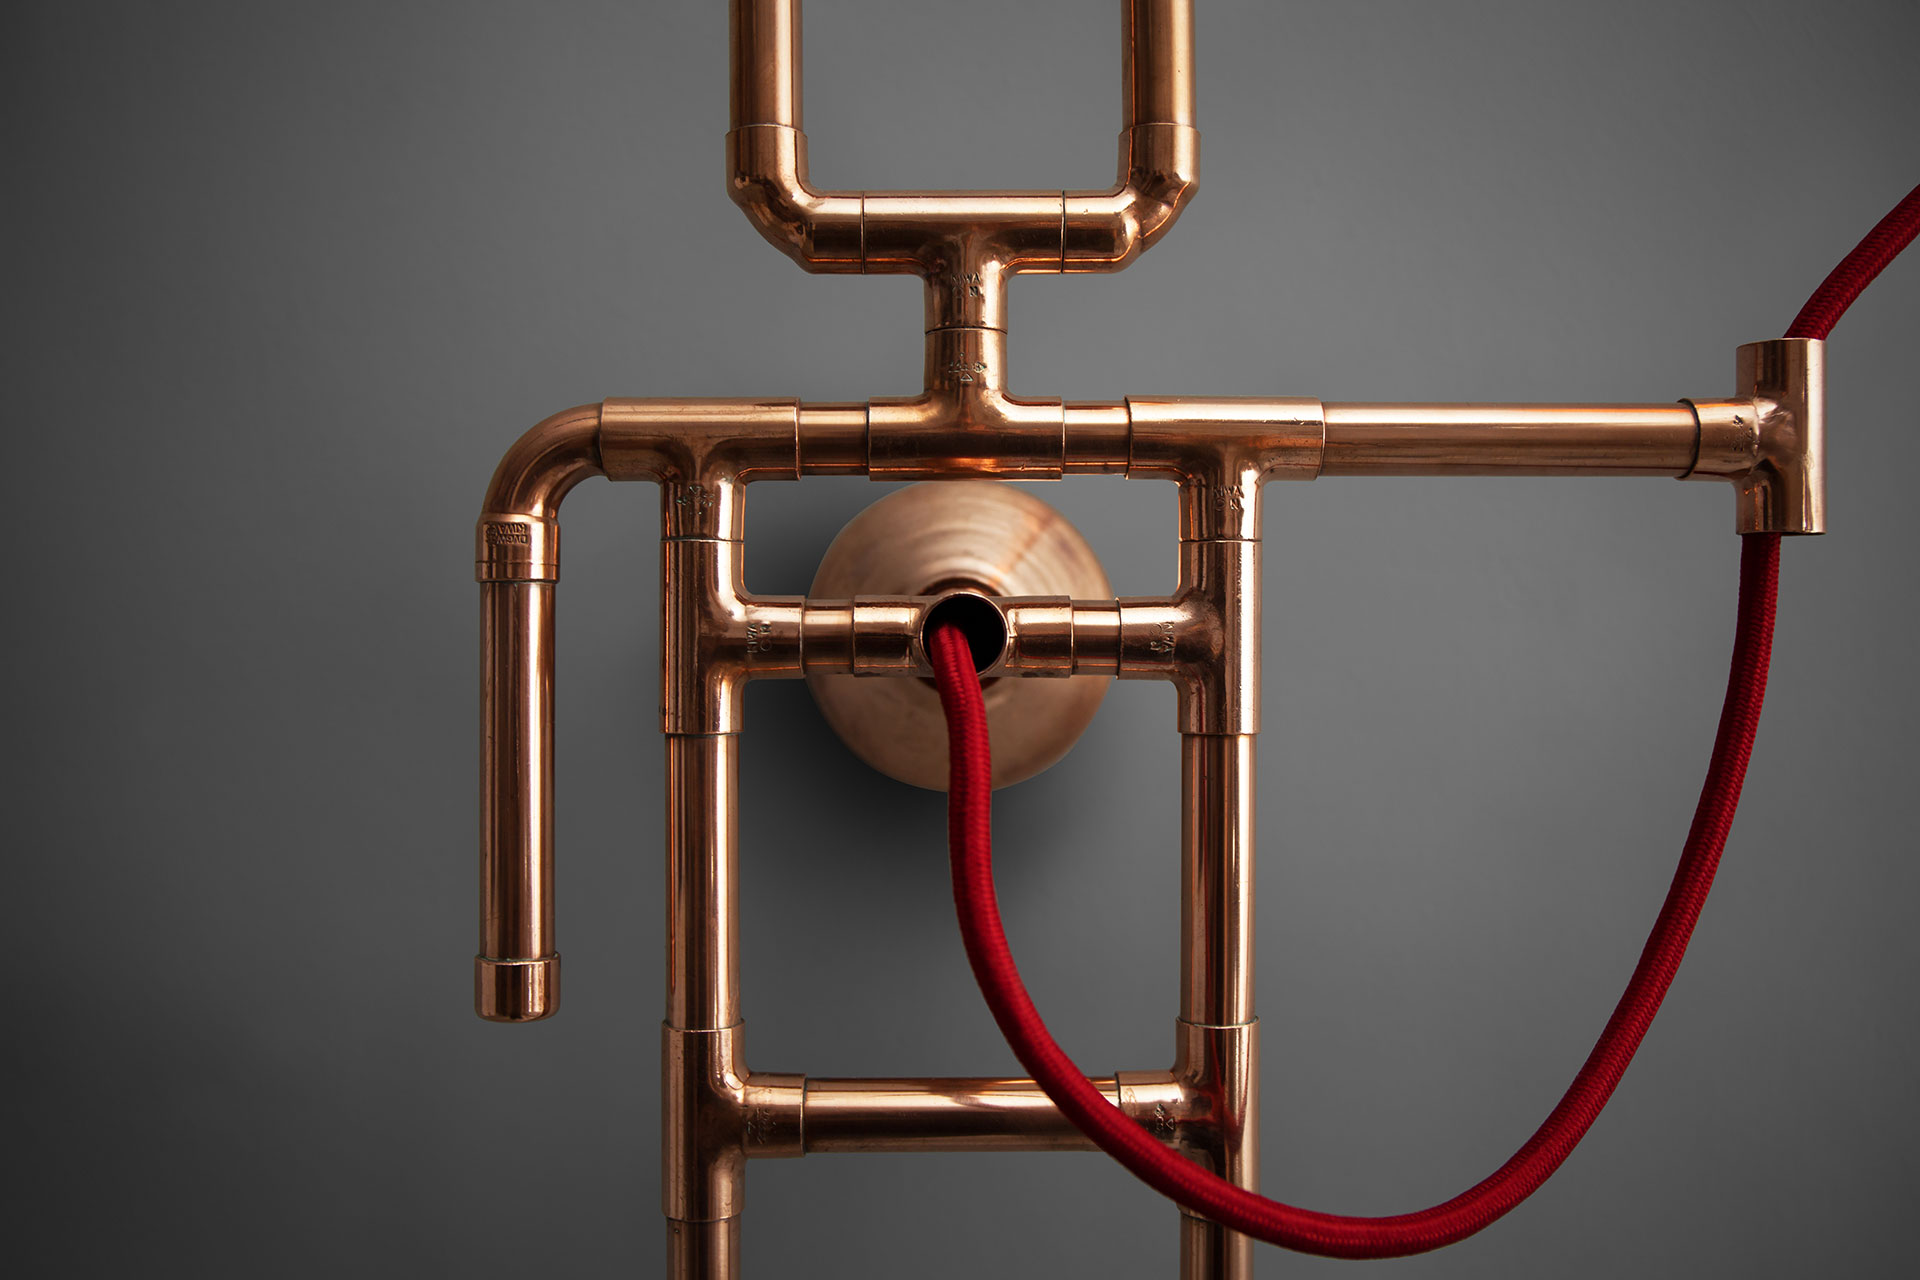 Copper pipe wall lamp with red braided cord